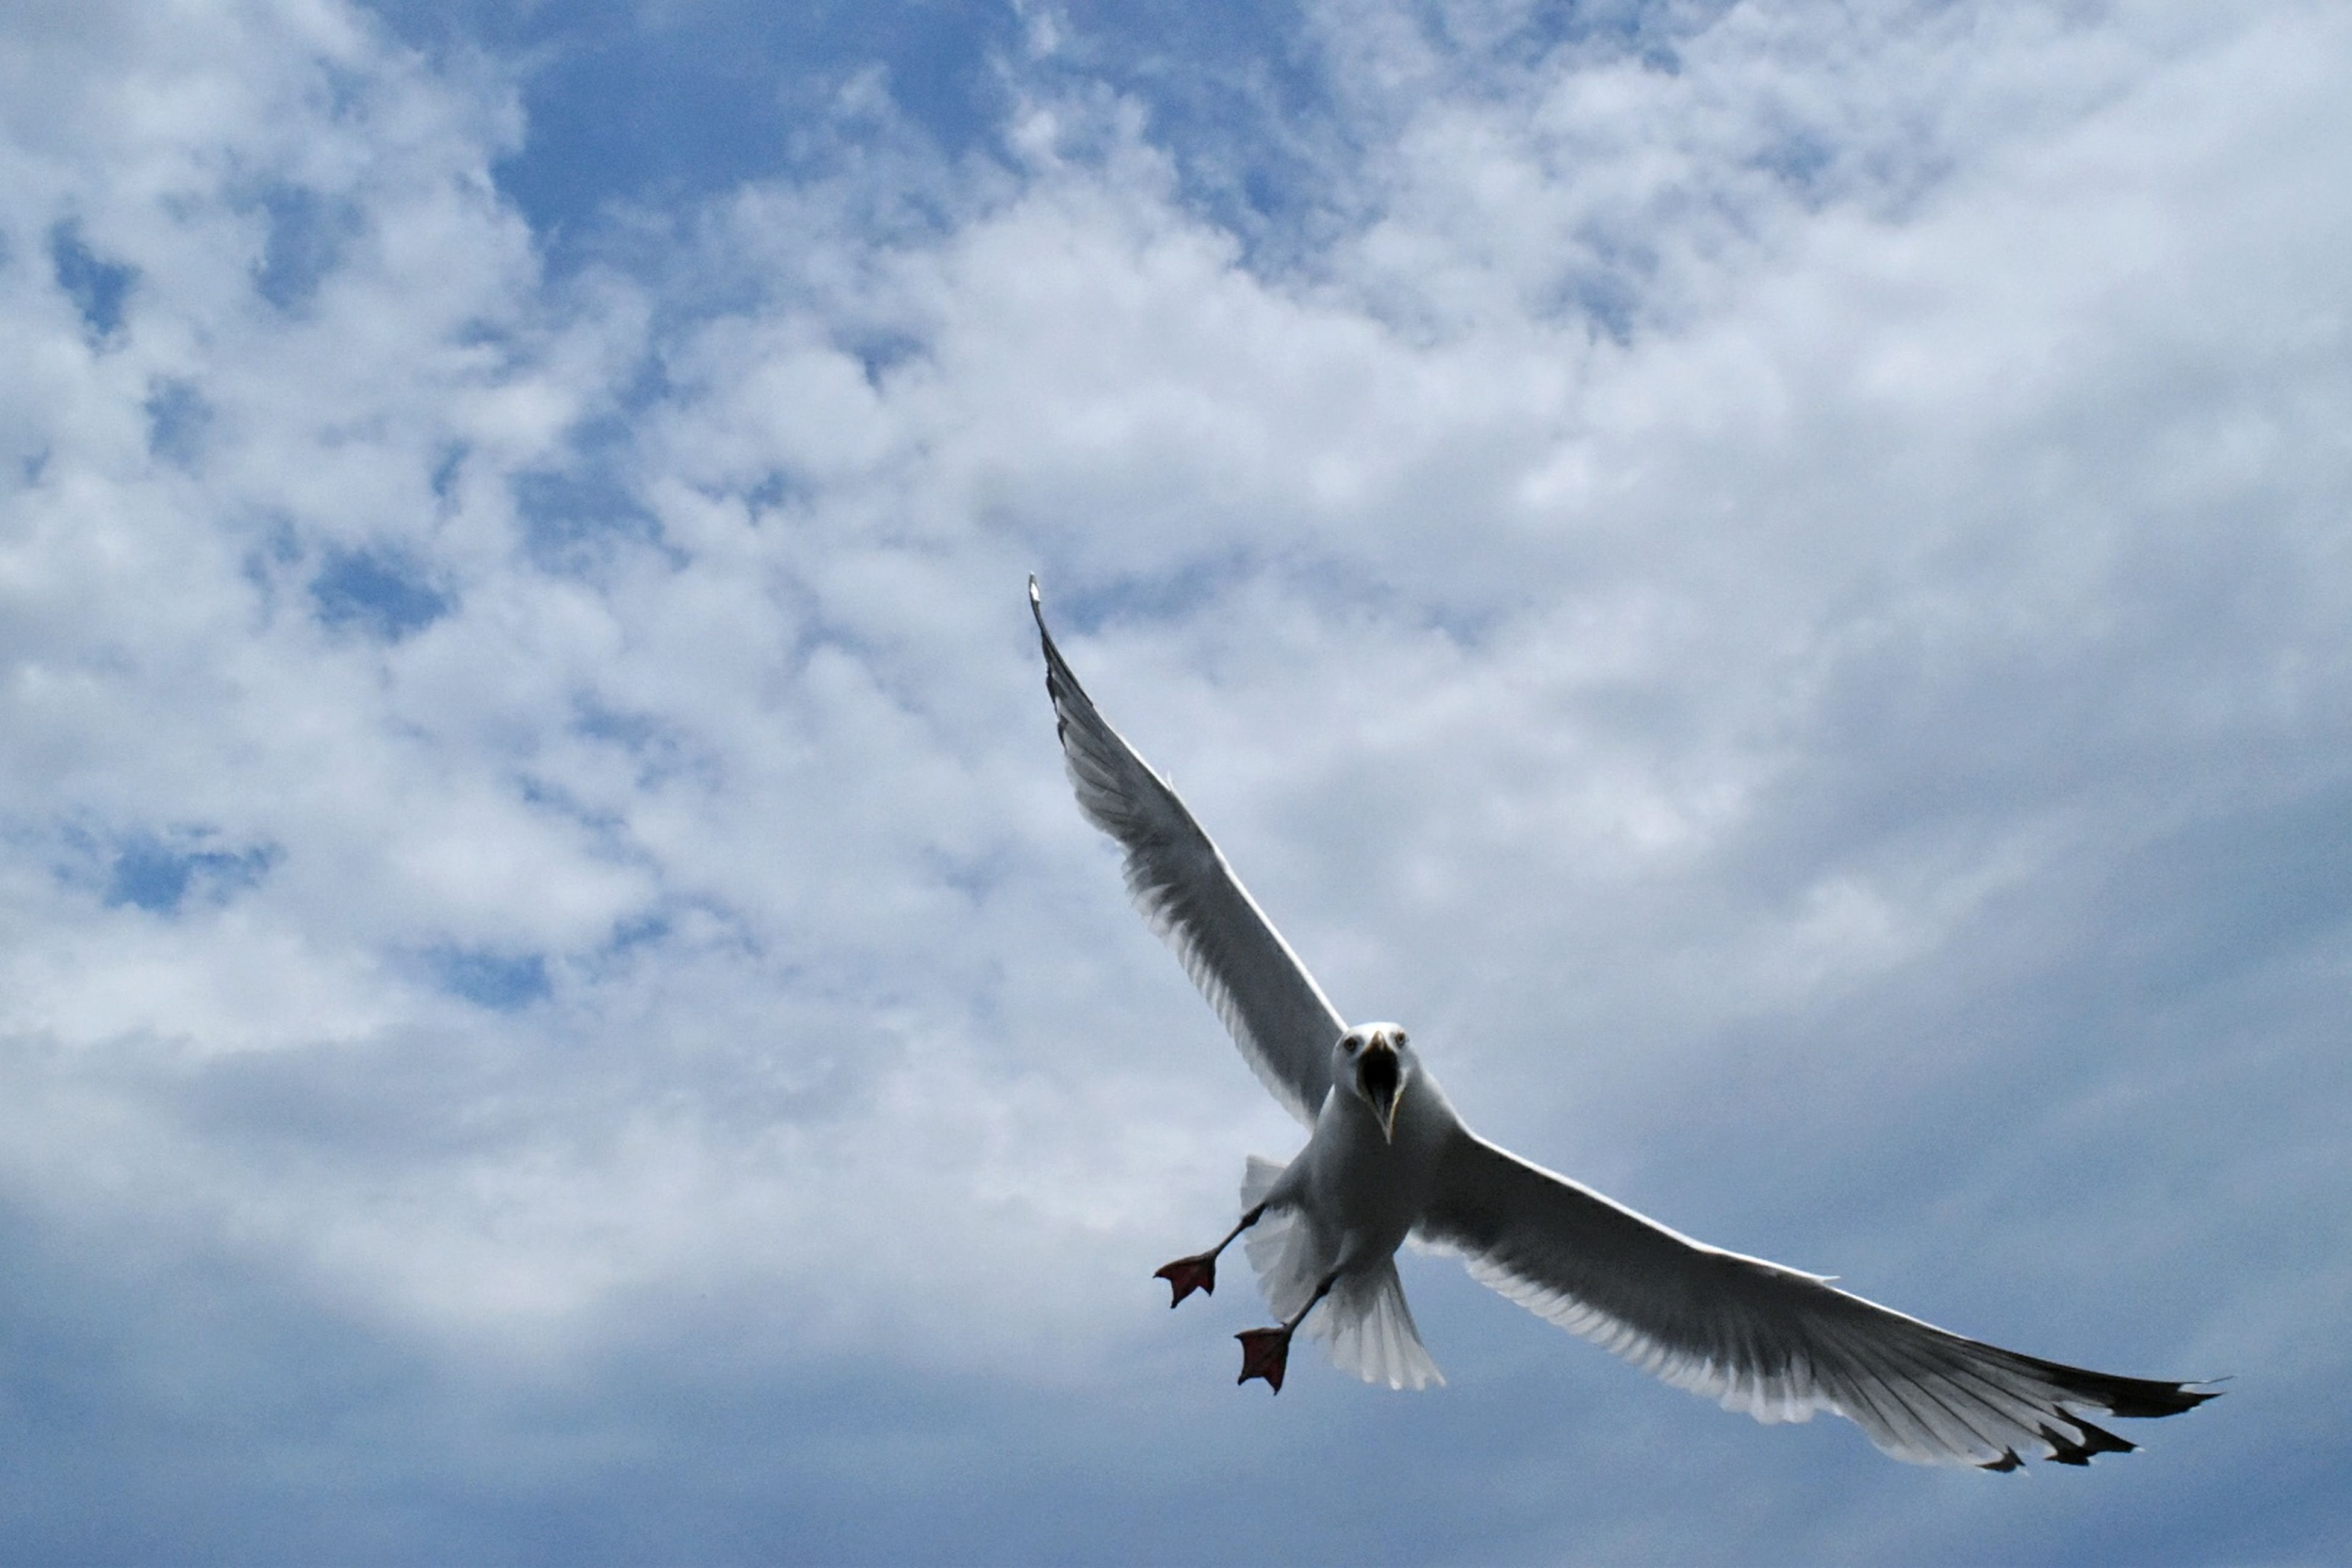 flying, spread wings, bird, cloud - sky, one animal, sky, animal themes, day, low angle view, animals in the wild, mid-air, nature, seagull, no people, outdoors, close-up